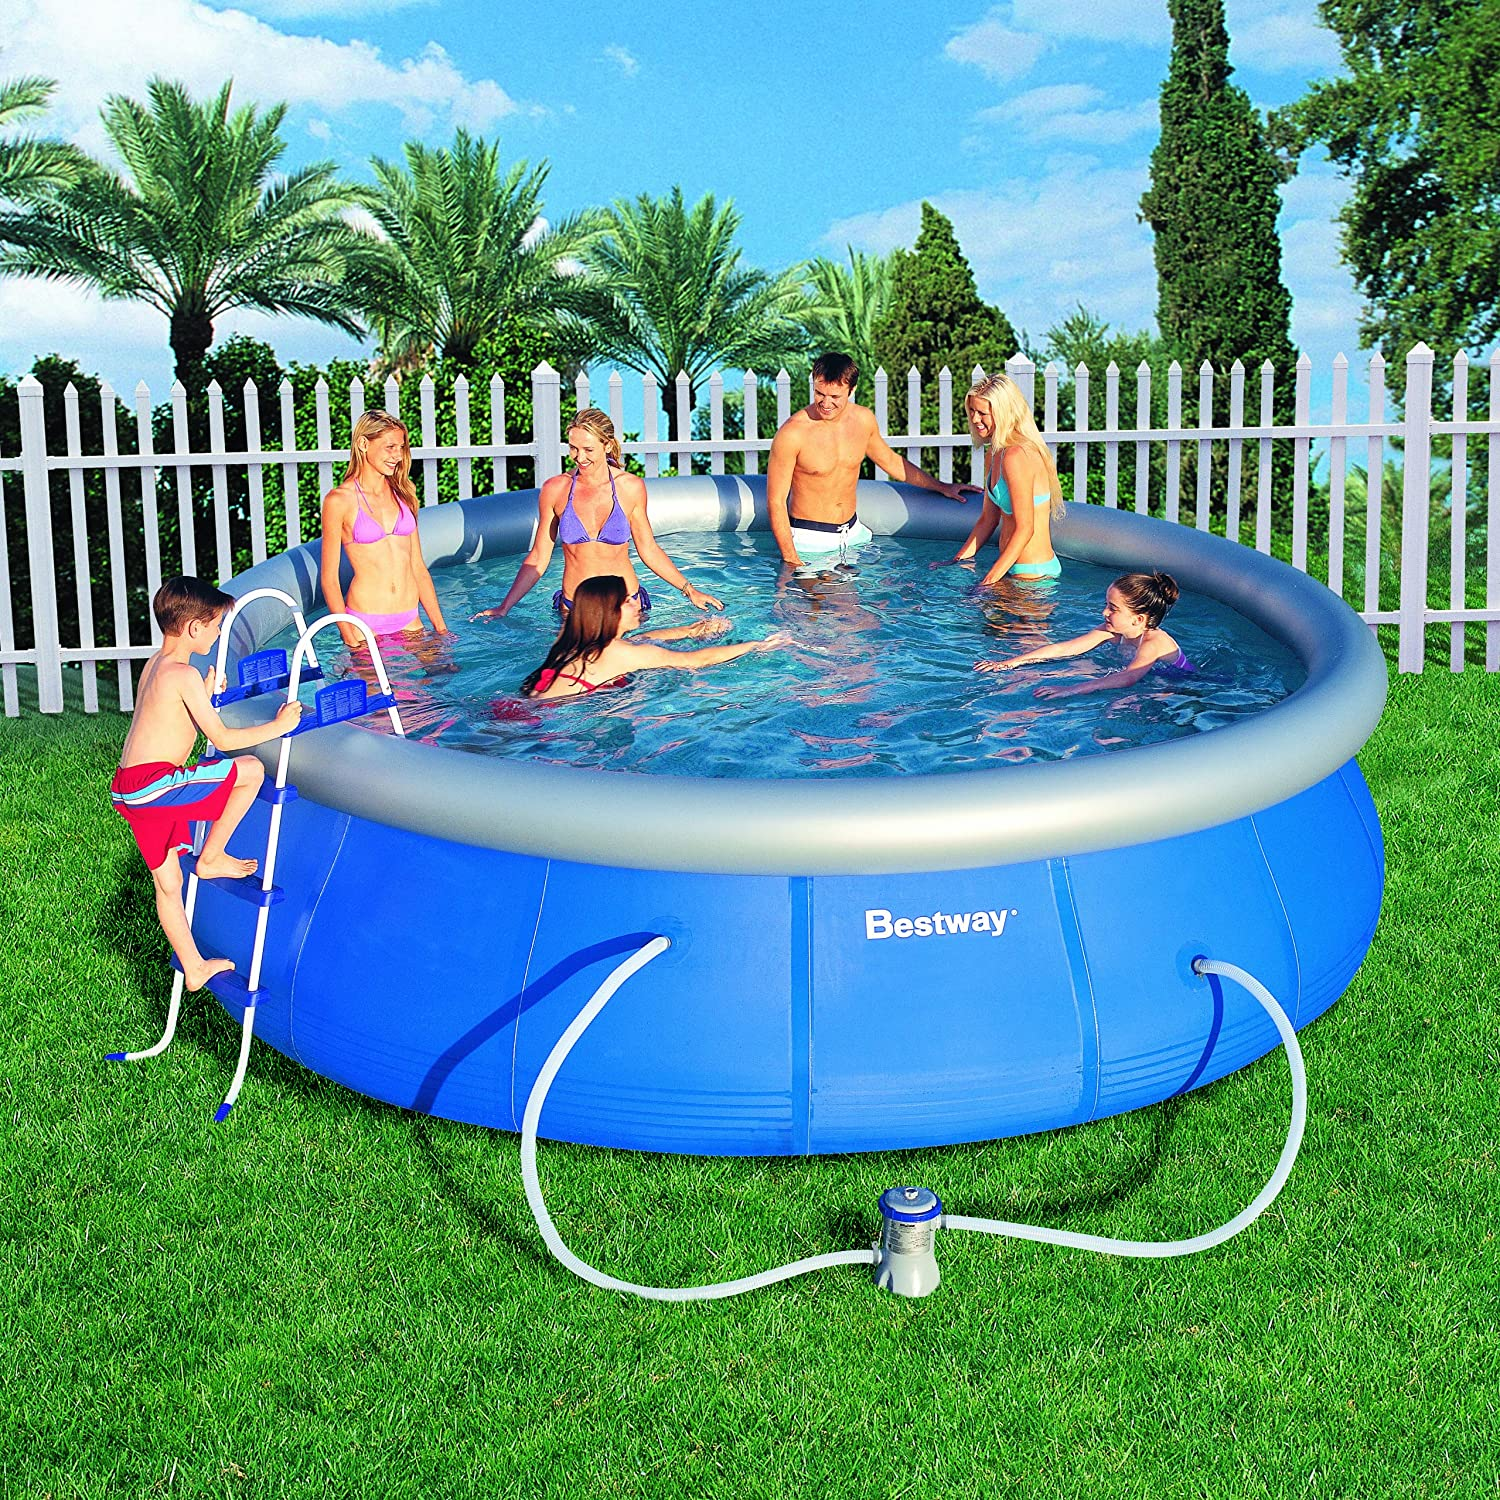 Best above ground pool reviews 2017 ultimate buying guide for Best in ground pool